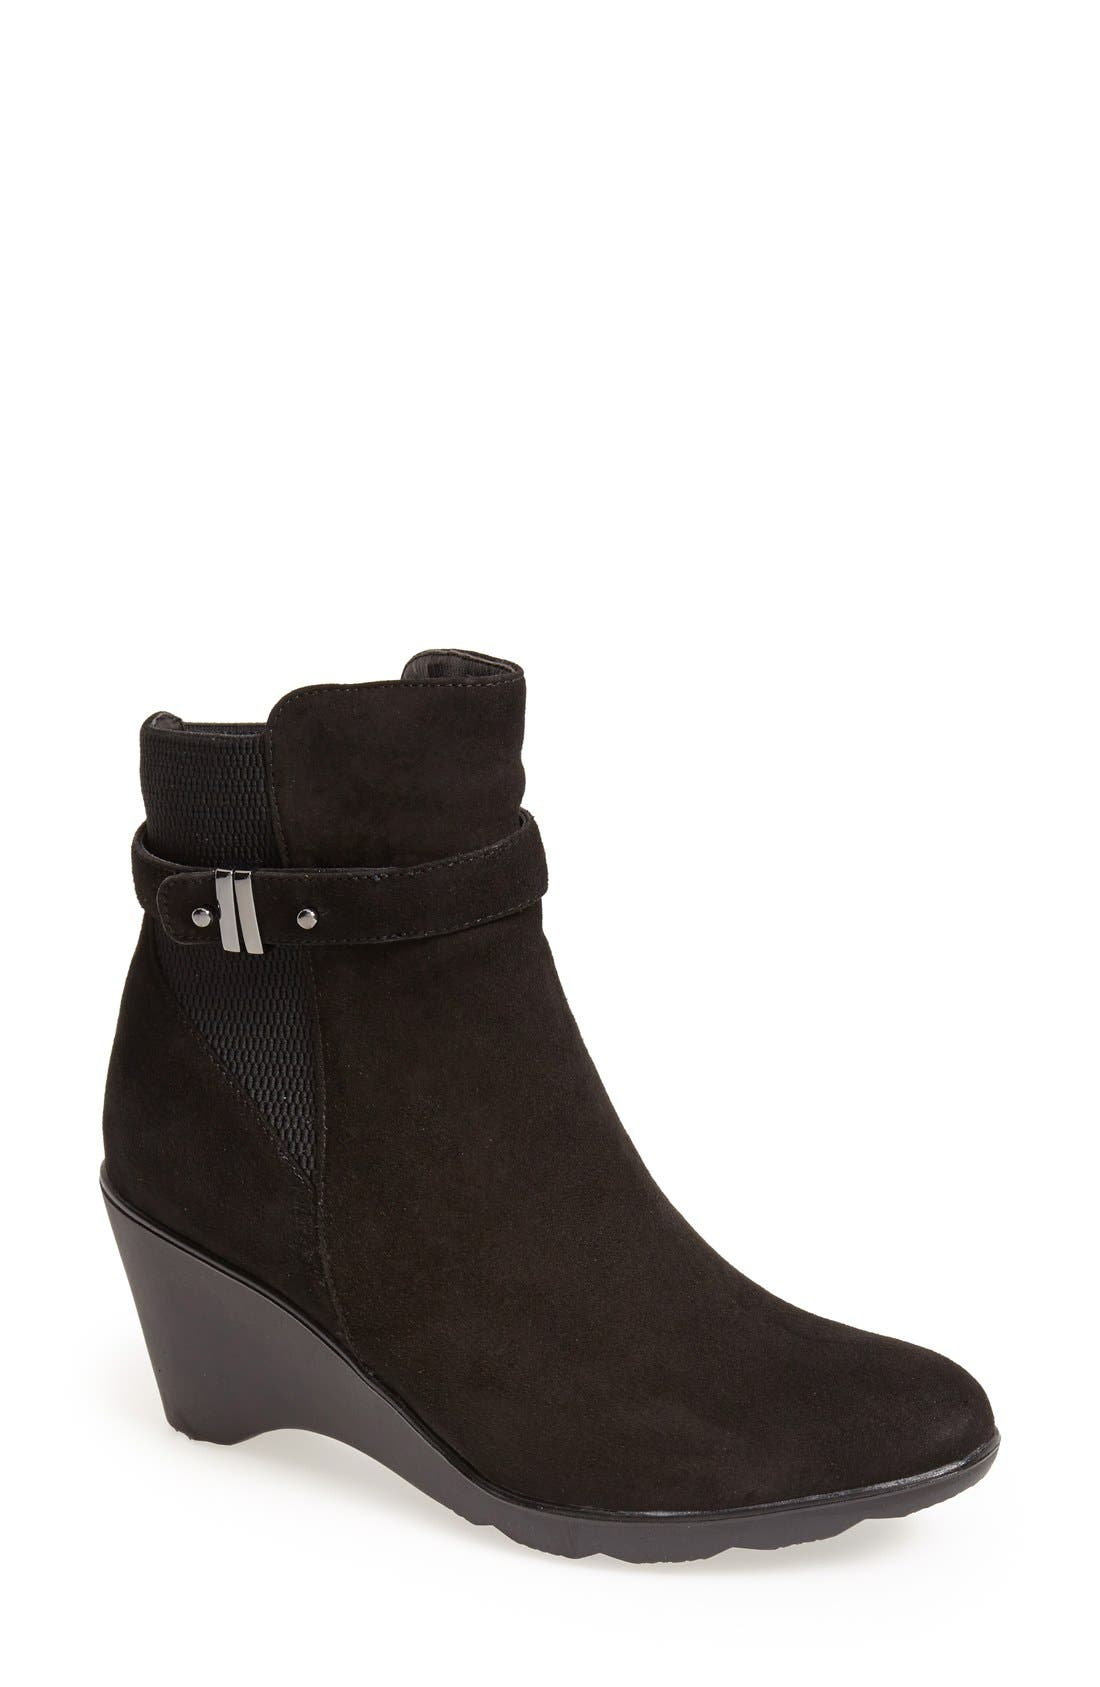 Blondo 'Liberata' Waterproof Suede Bootie (Women)